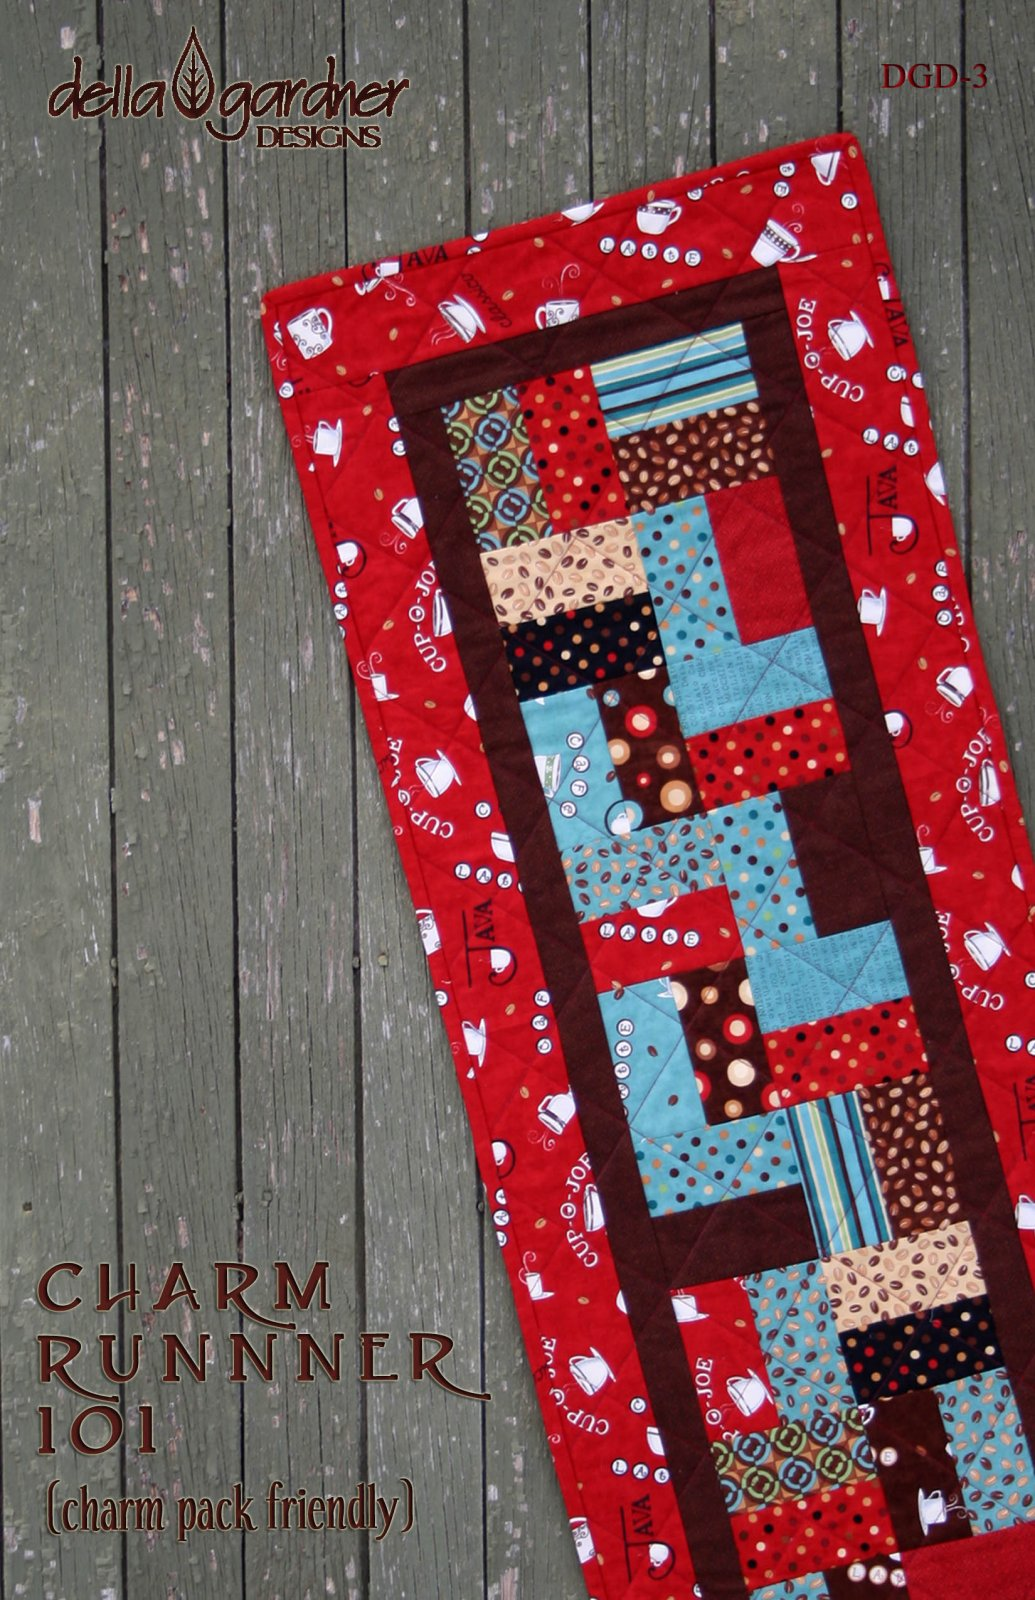 Charm Runner 101 Table Runner Pattern